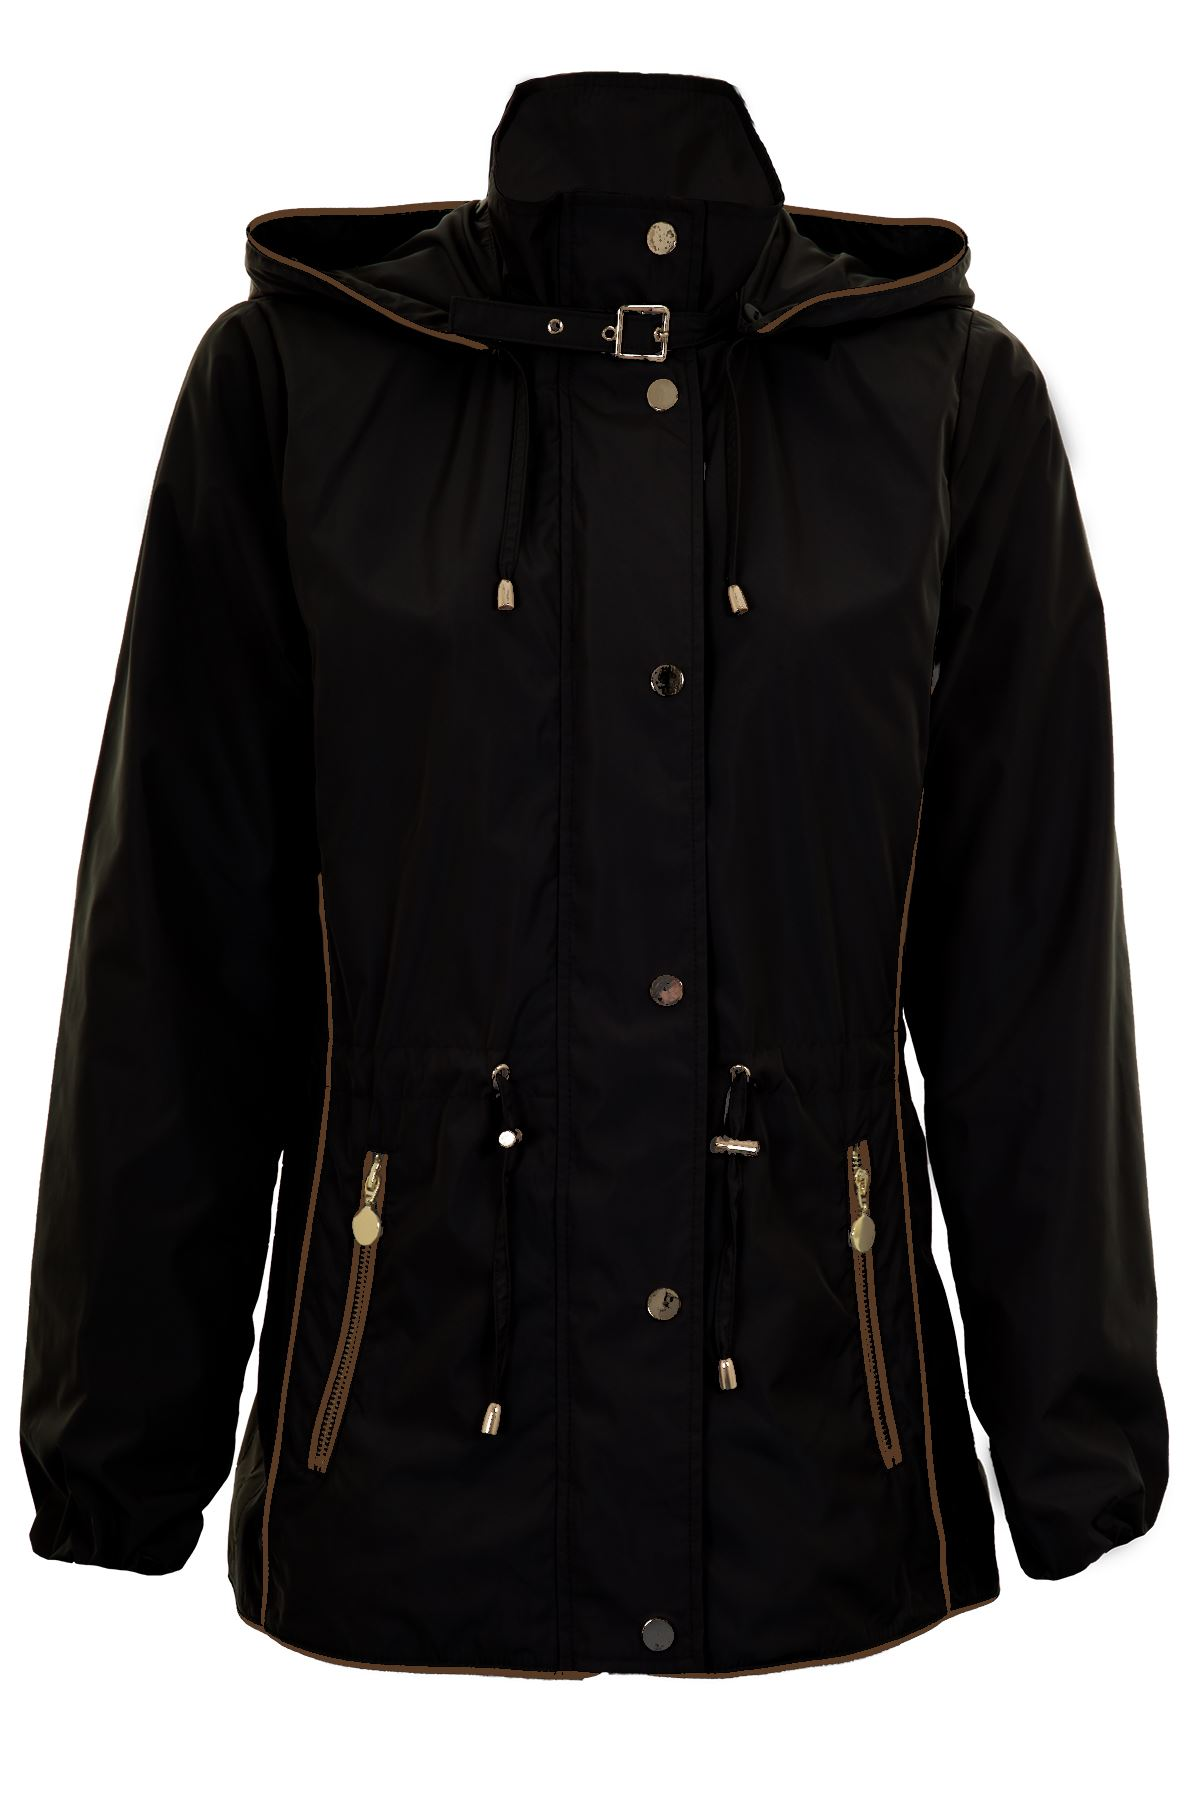 Womens lightweight waterproof jackets